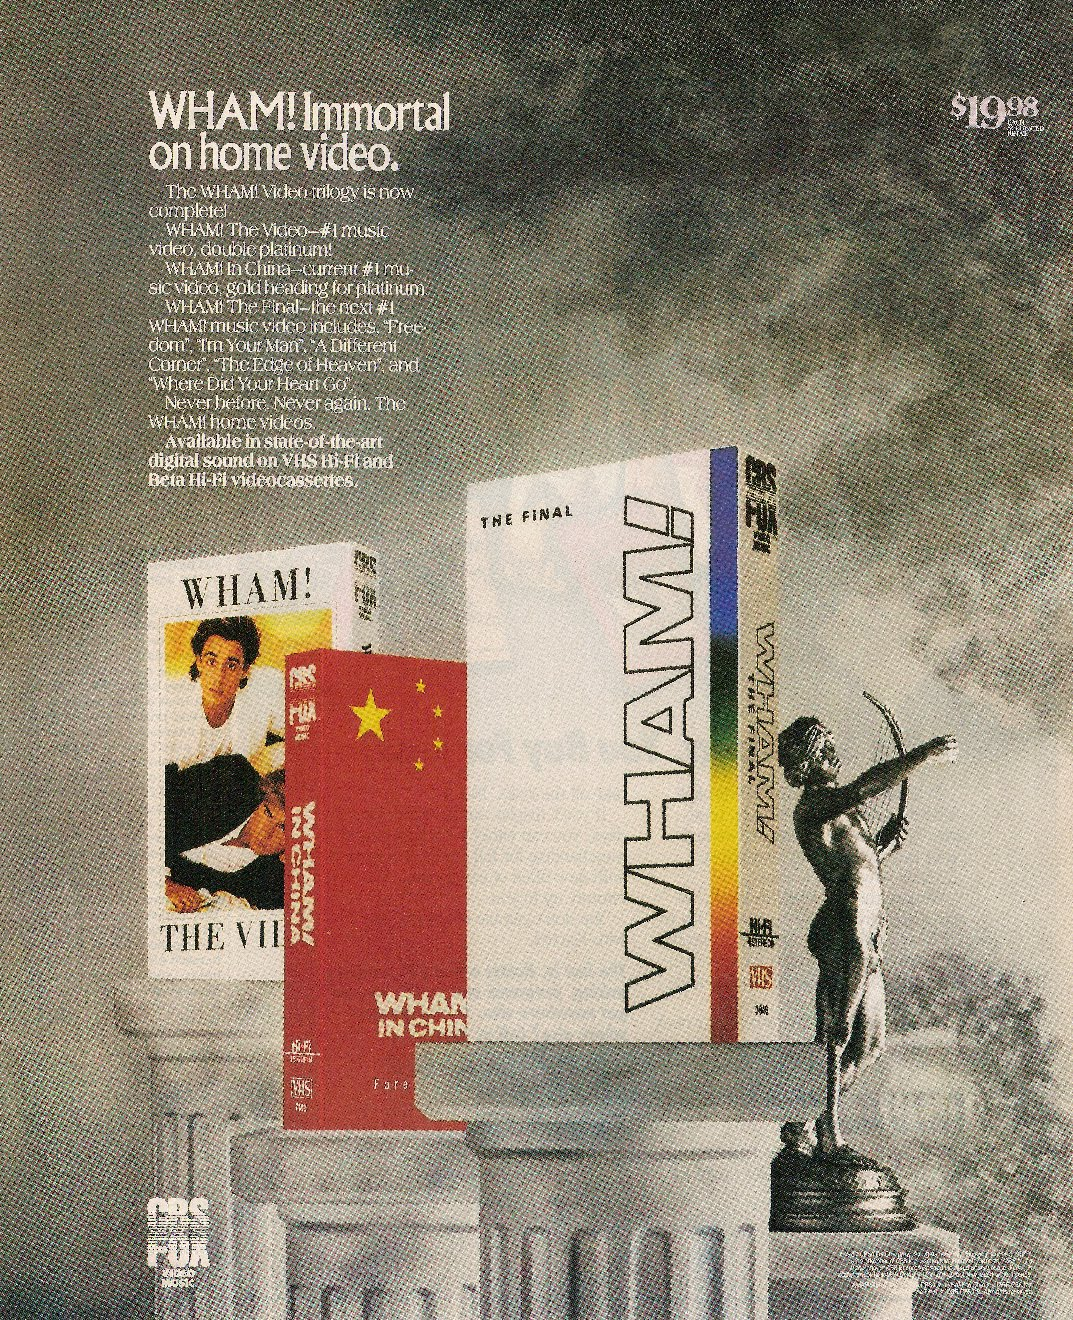 WHAM ! (Enjoy What You Do): Wham! Immortal on home video